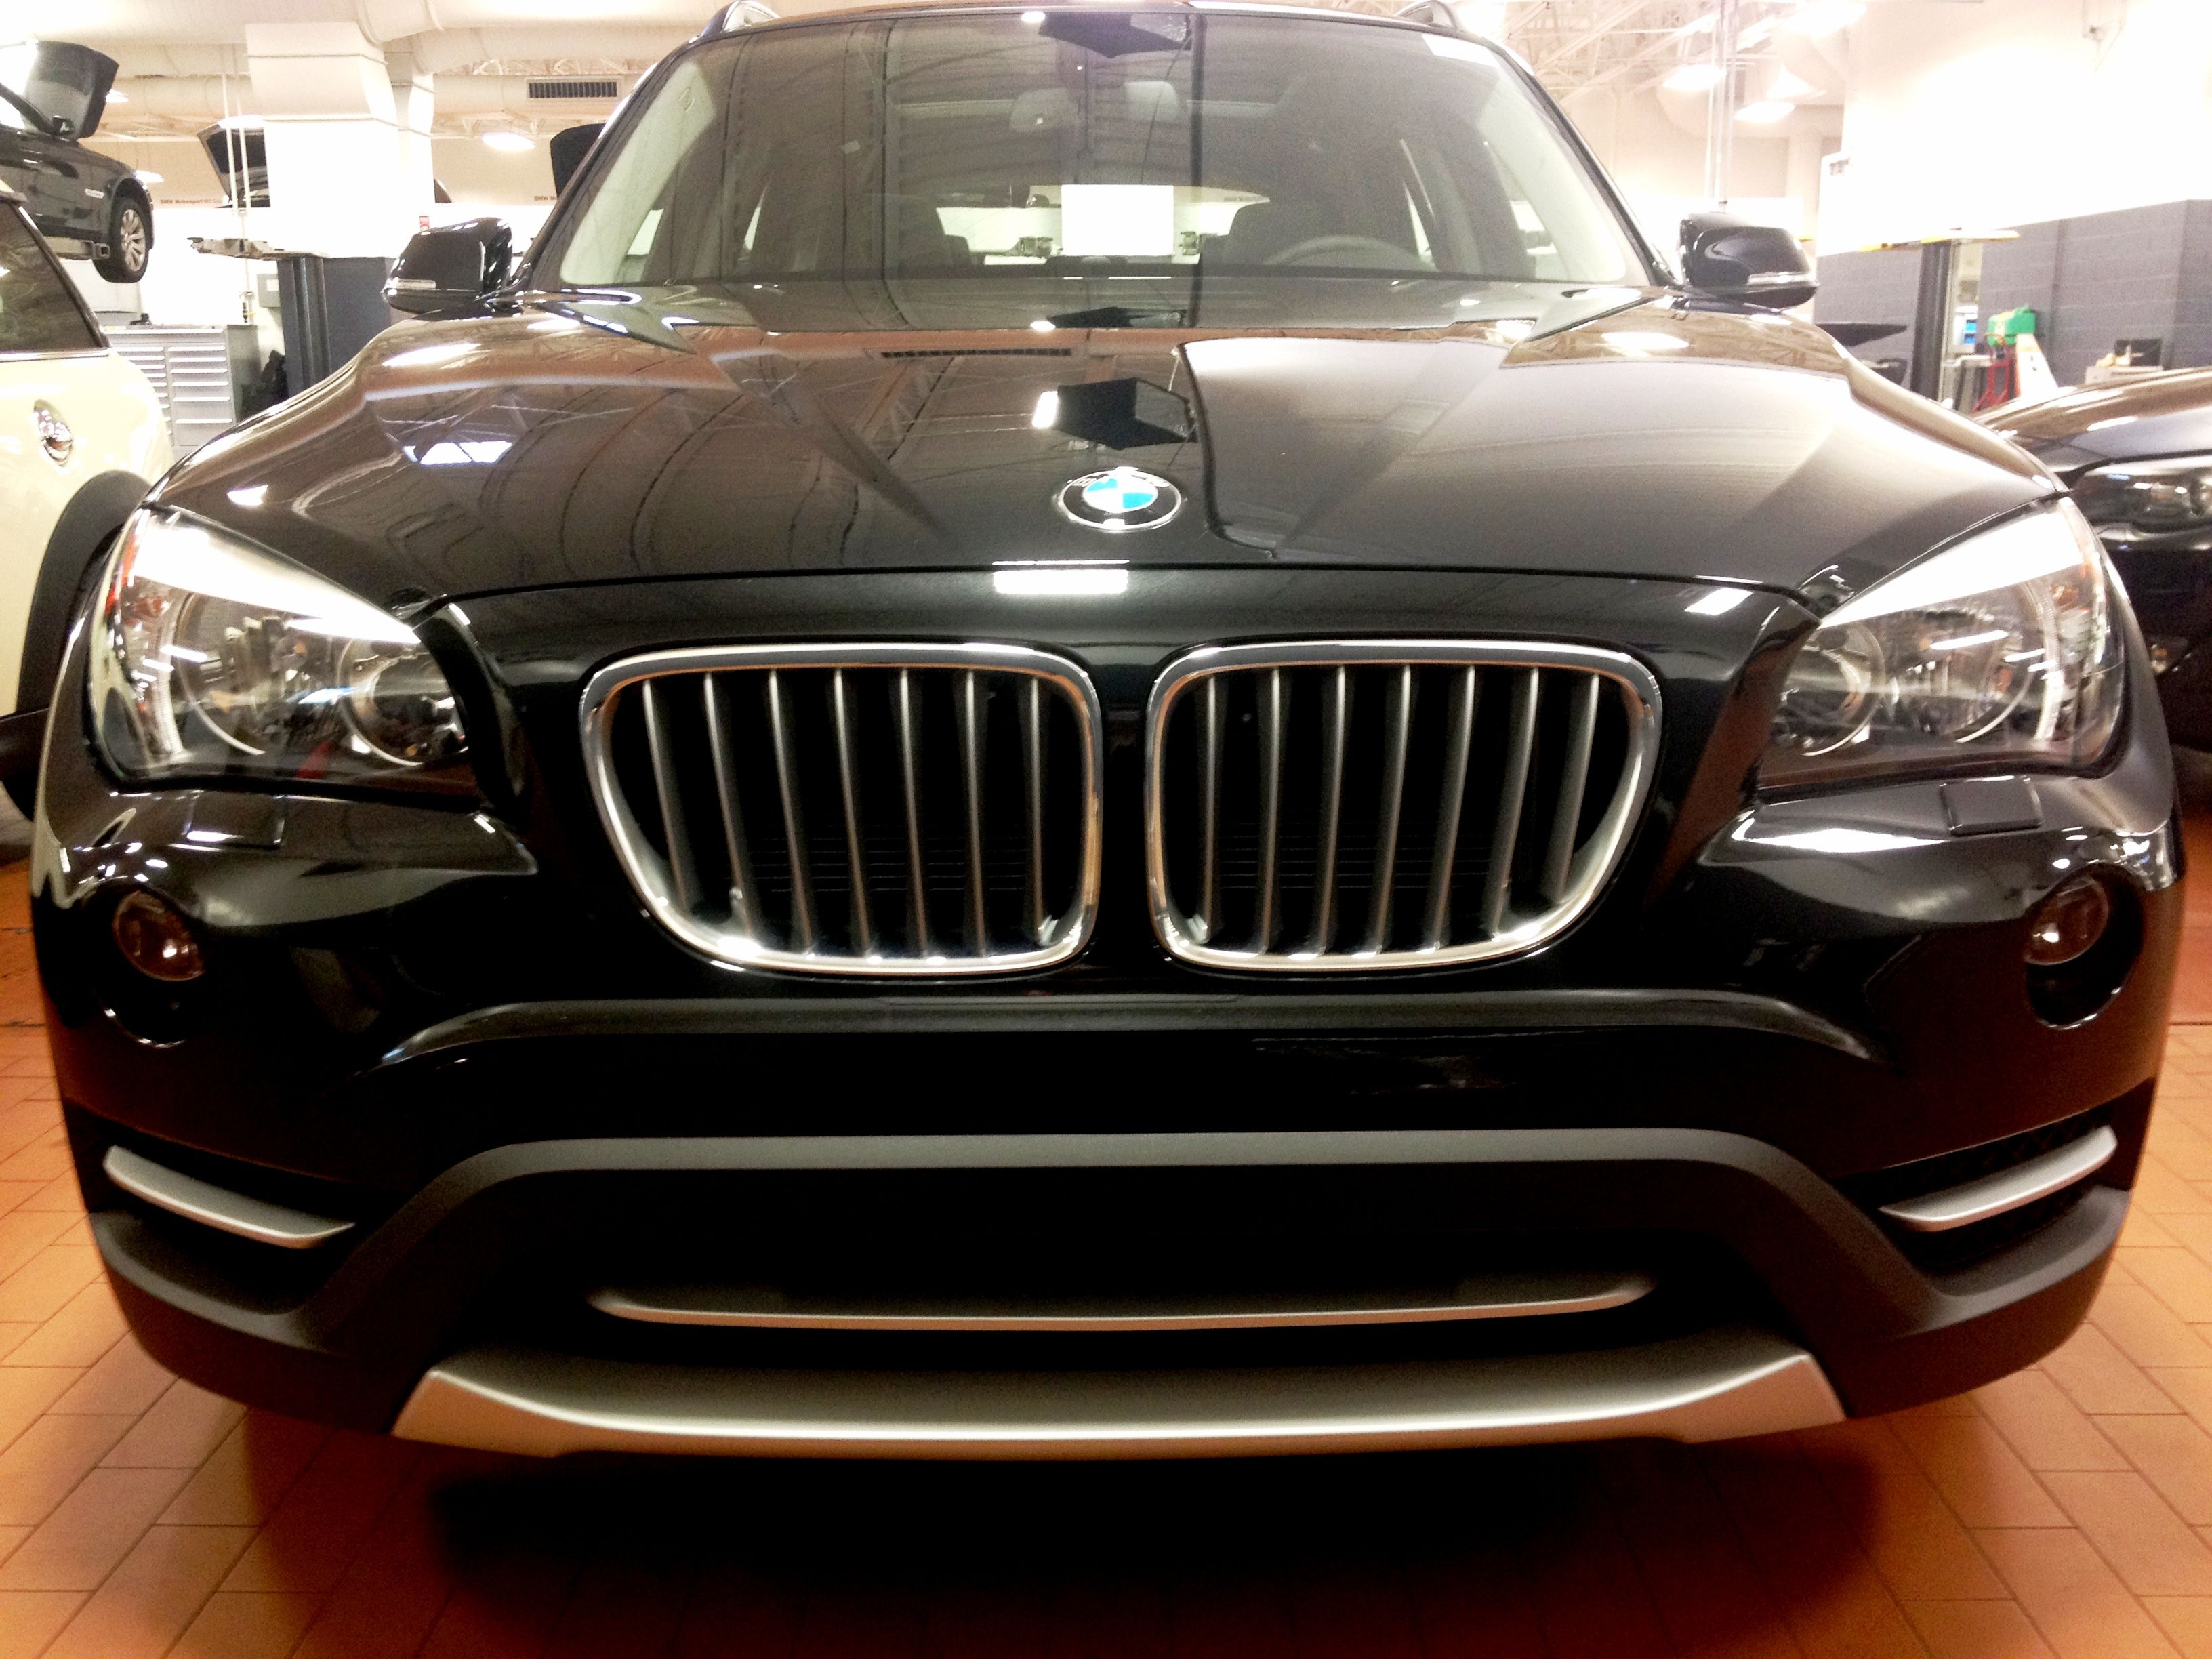 BMW X1 at BillJacobsBMW Naperville BMW